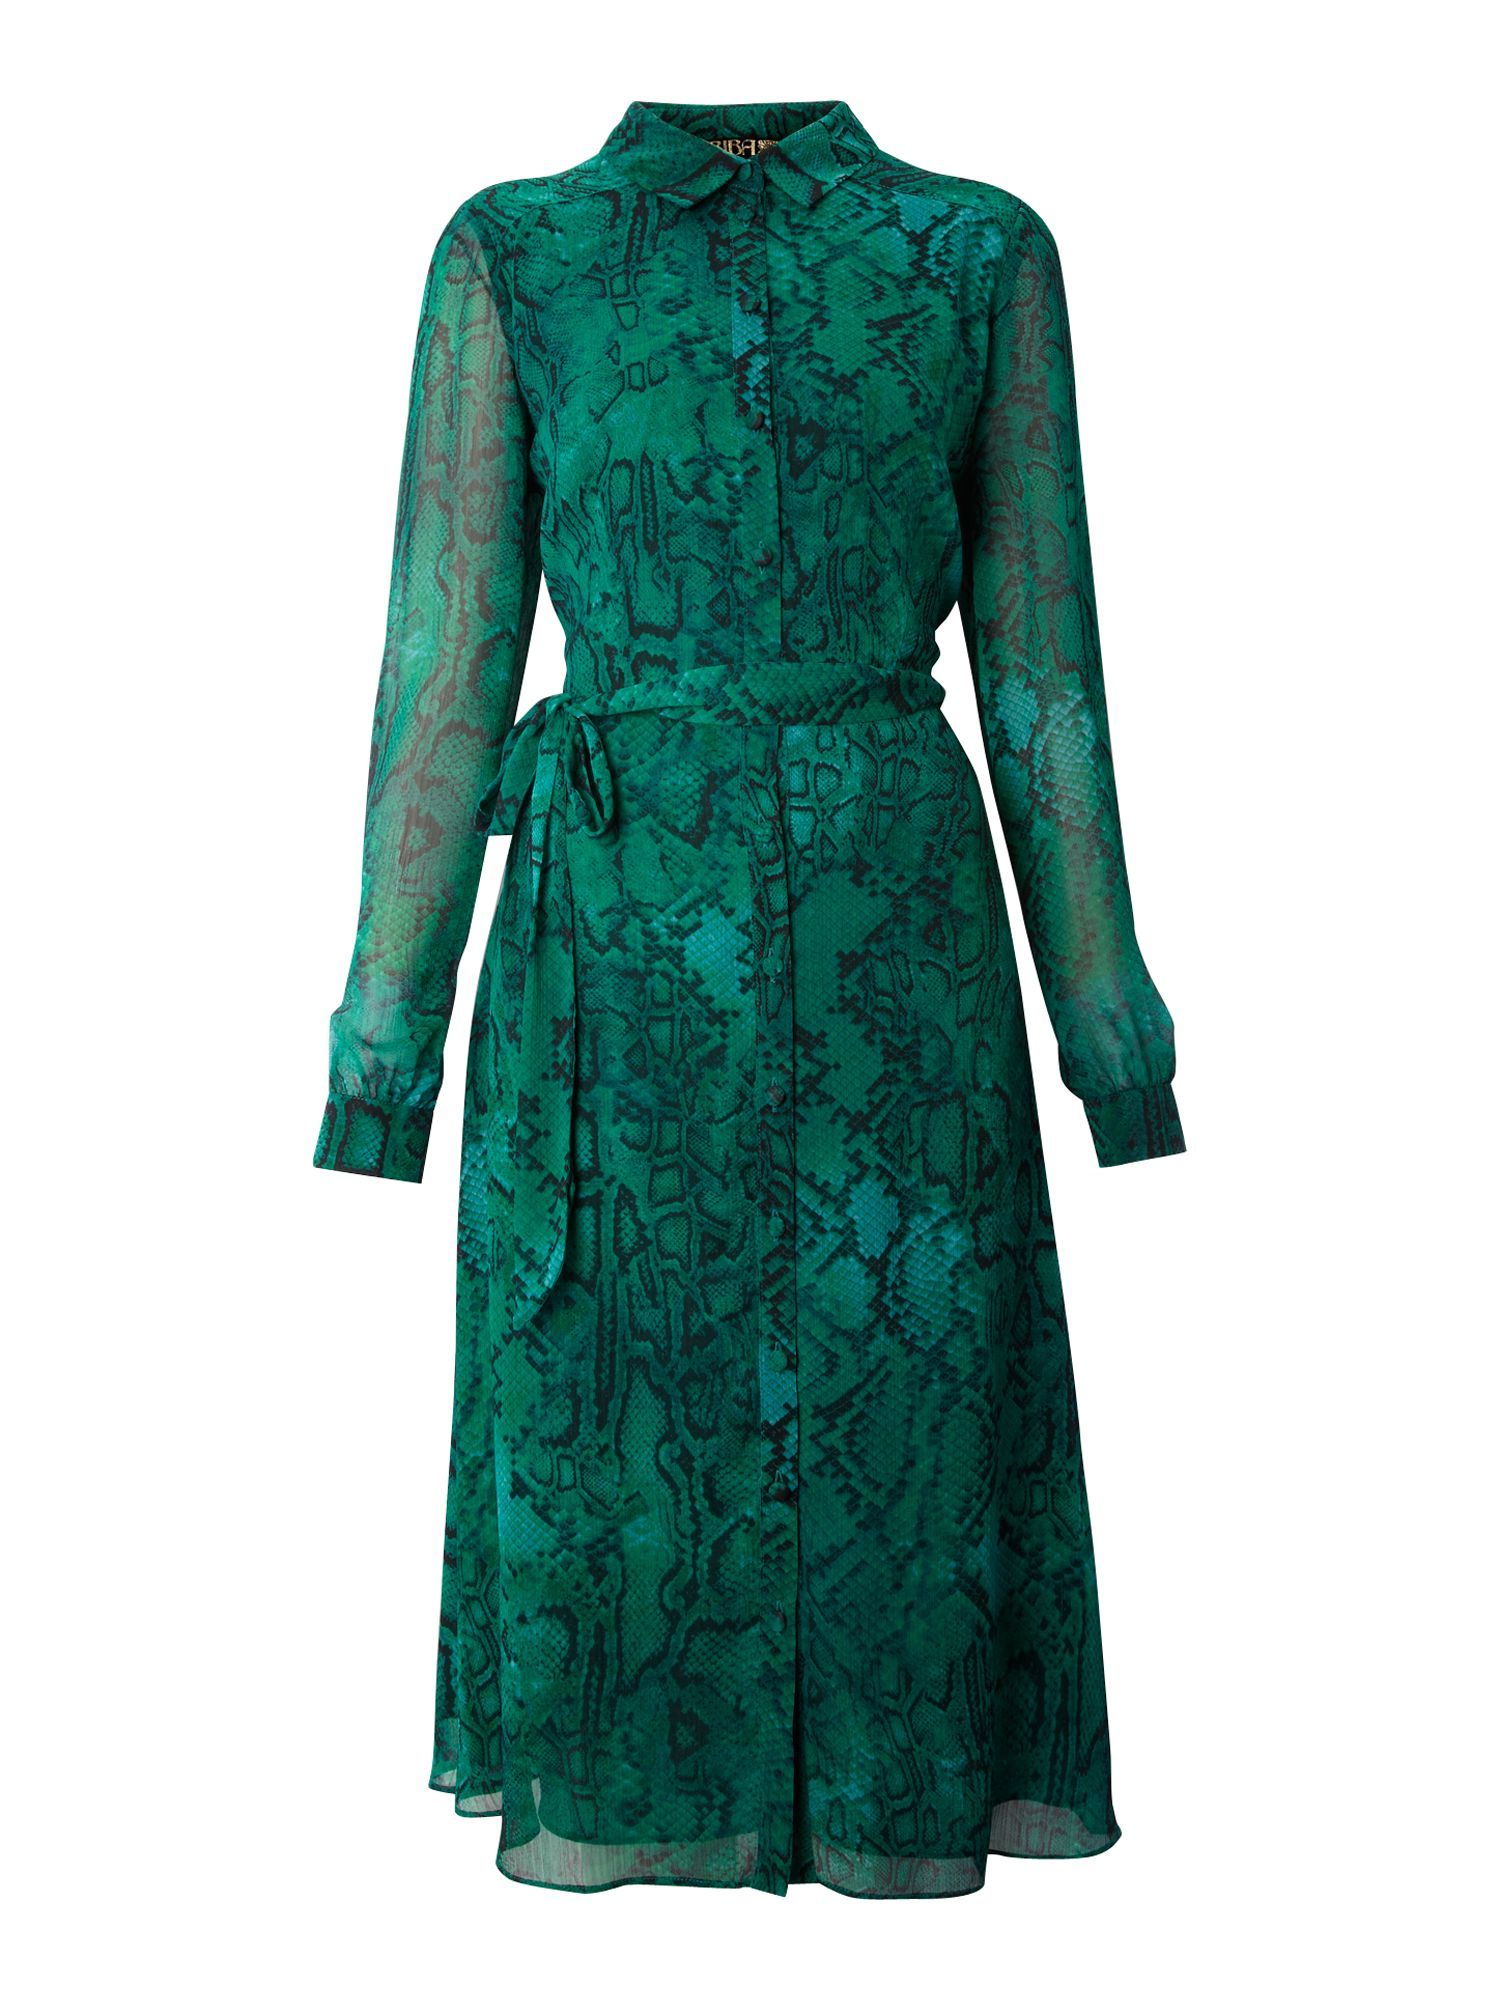 Biba Snake Printed Shirt Dress in Green (azure) | Lyst